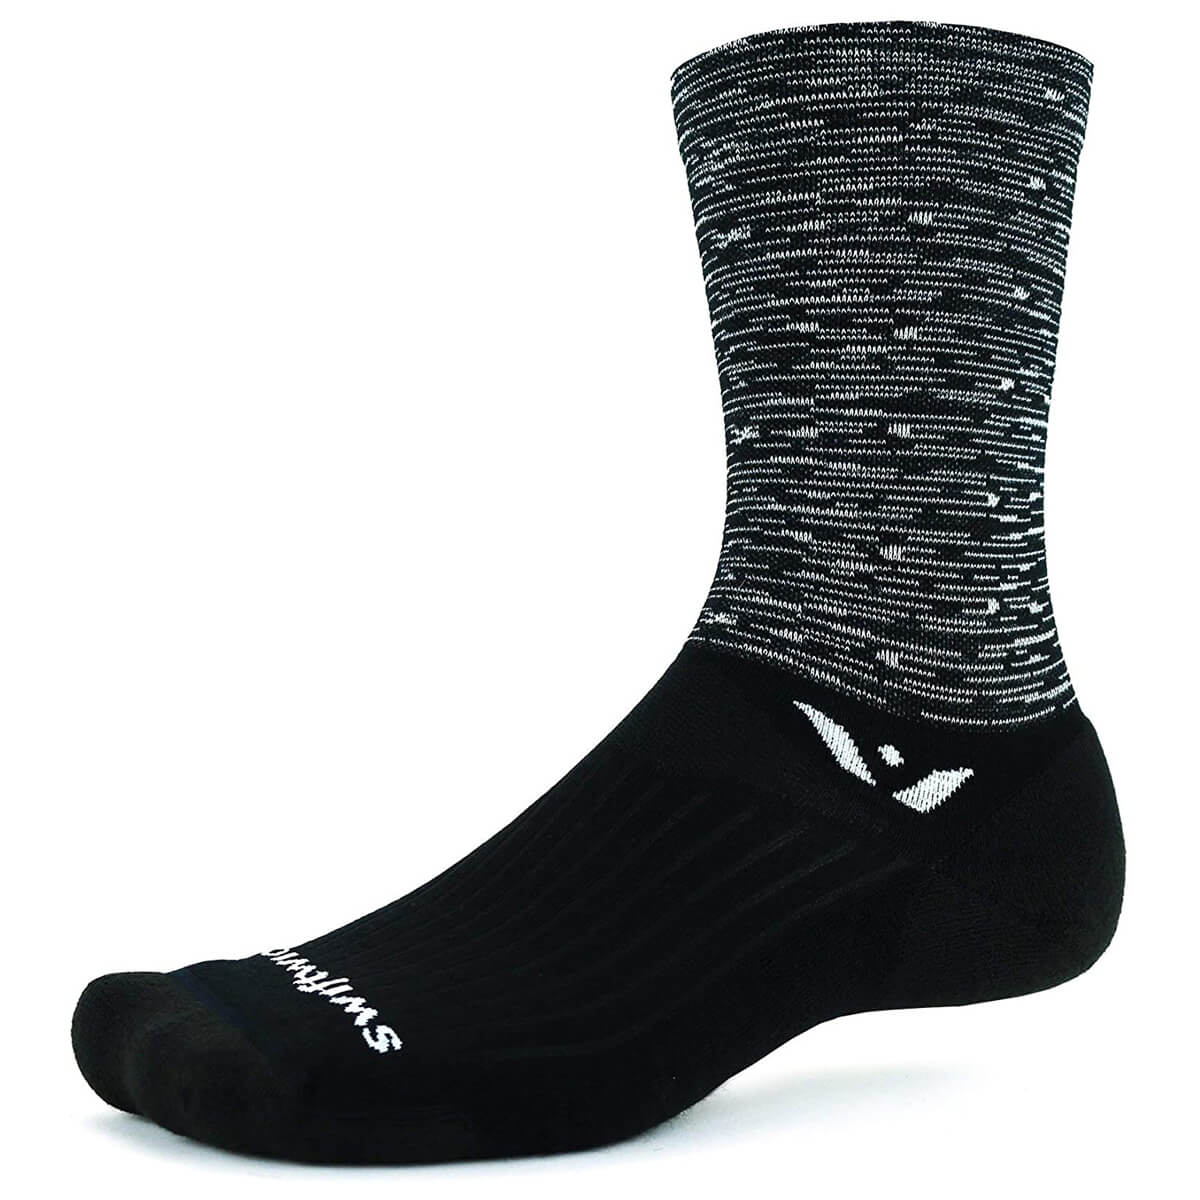 Swiftwick Pursuit Seven Hiking Socks